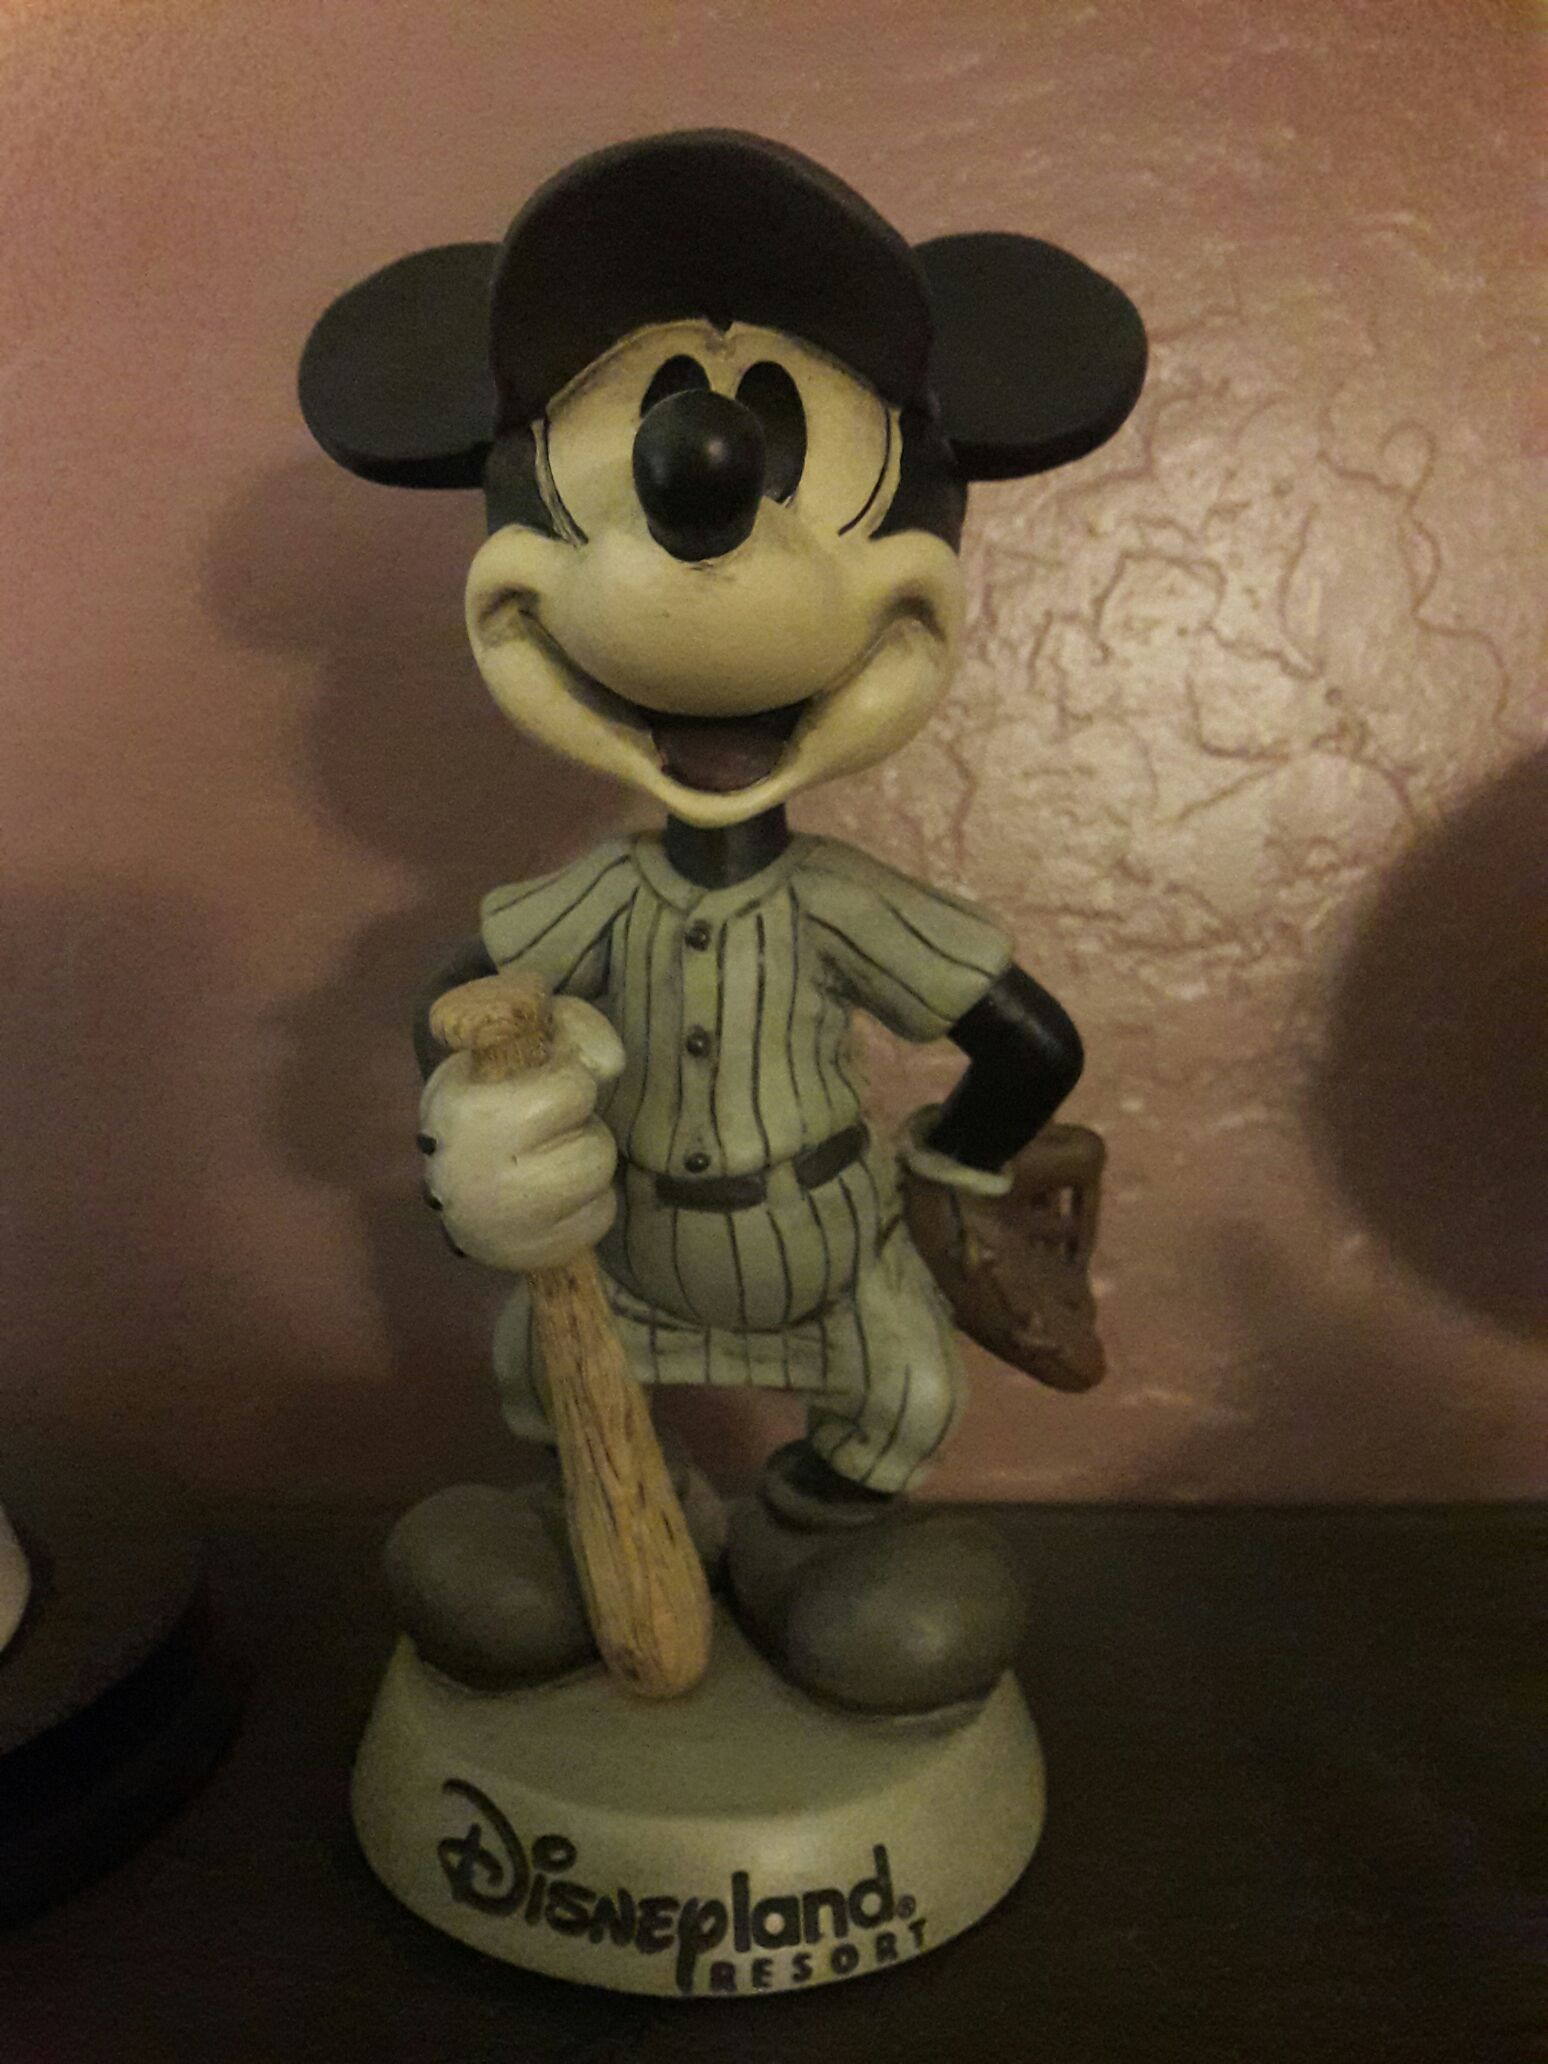 Mickey Mouse Baseball Disneyland Bobblehead - Disney front image (front cover)